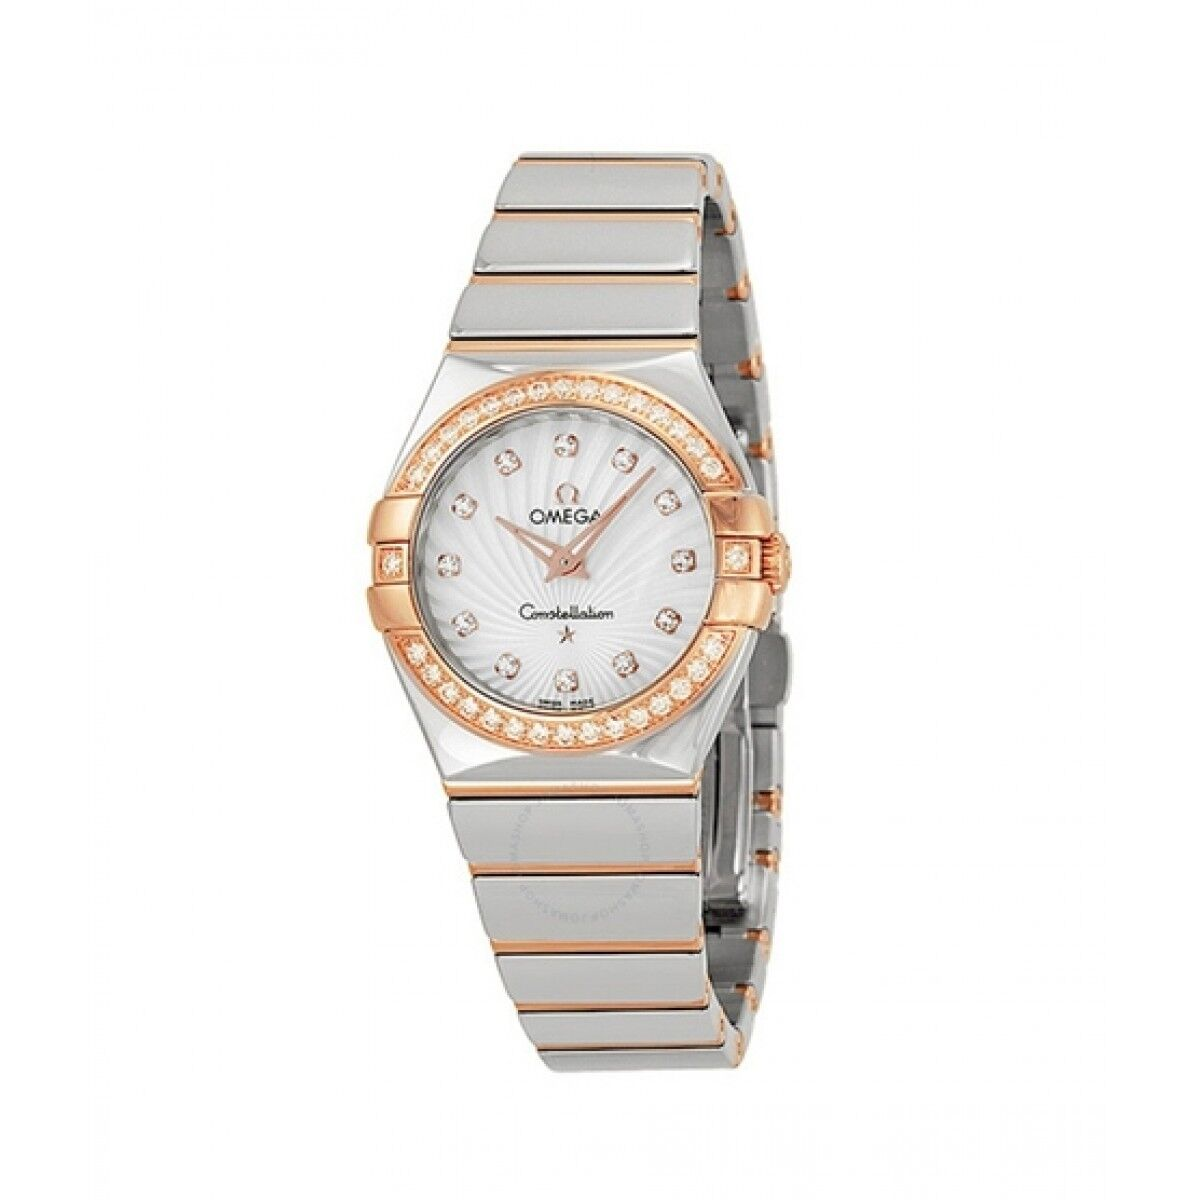 Omega Constellation Women's Watch Two-Tone (123.25.27.60.55.006)